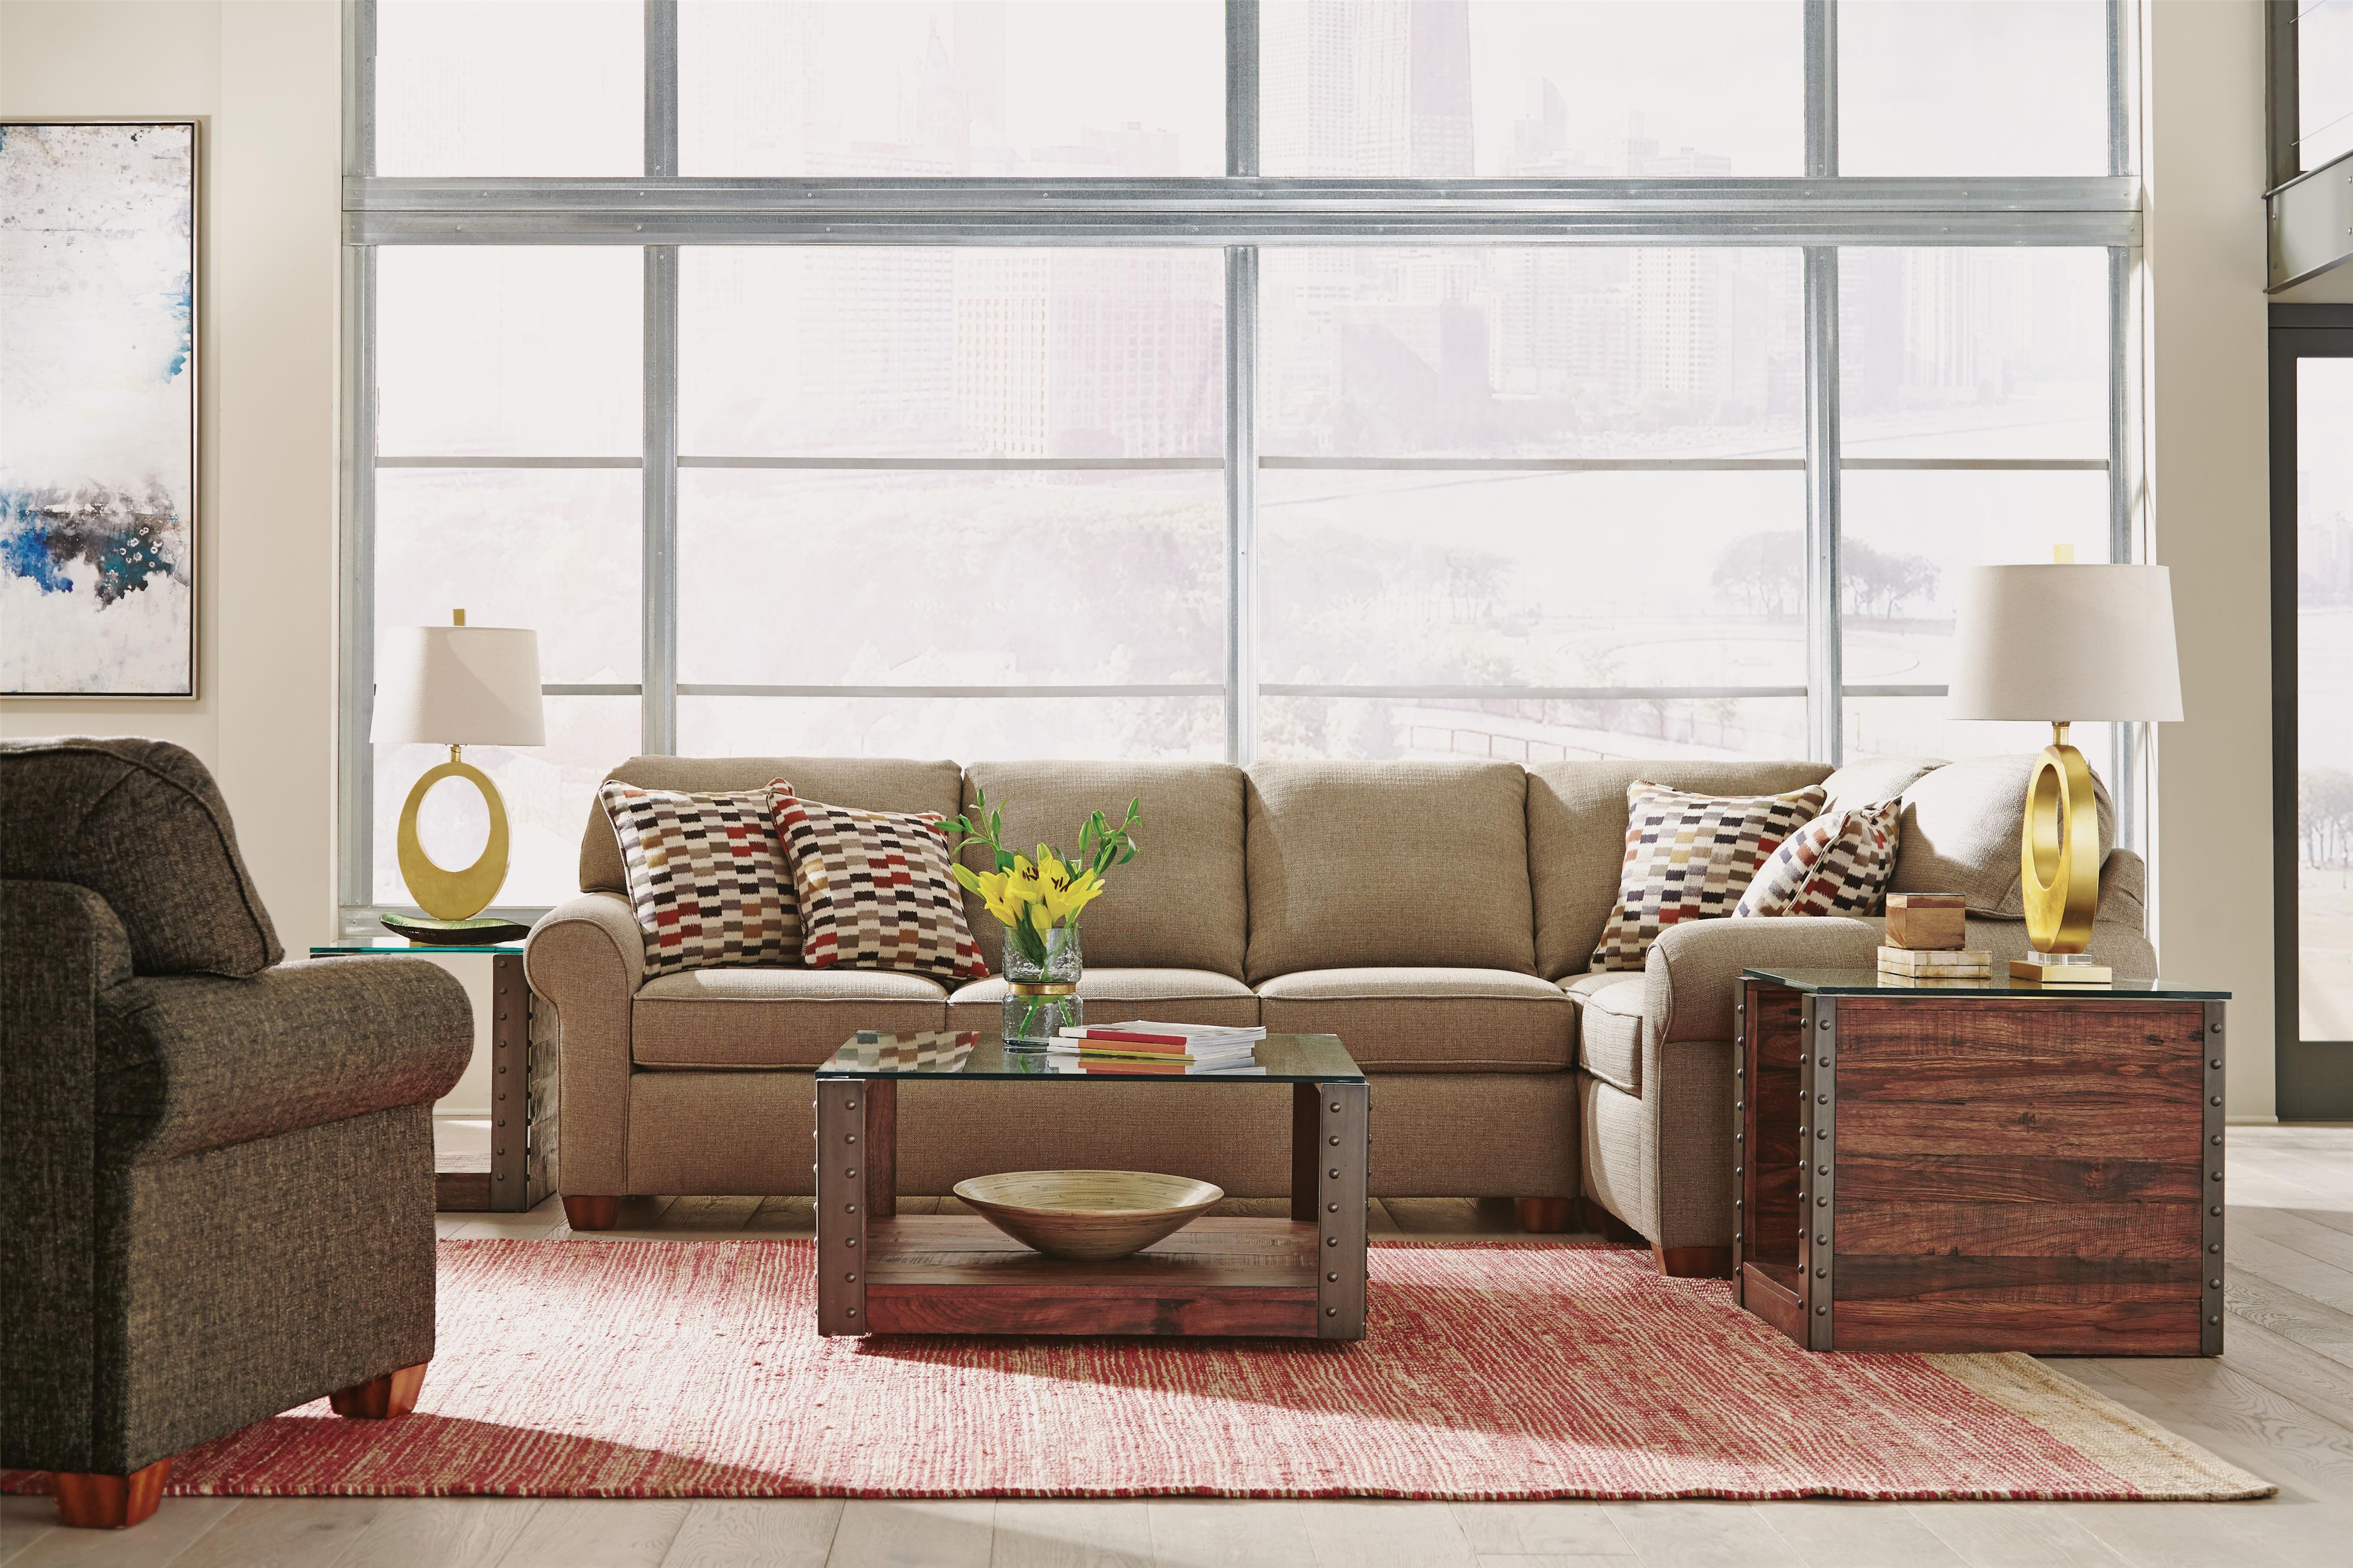 Flexsteel Thornton Stationary Living Room Group | Furniture and ...